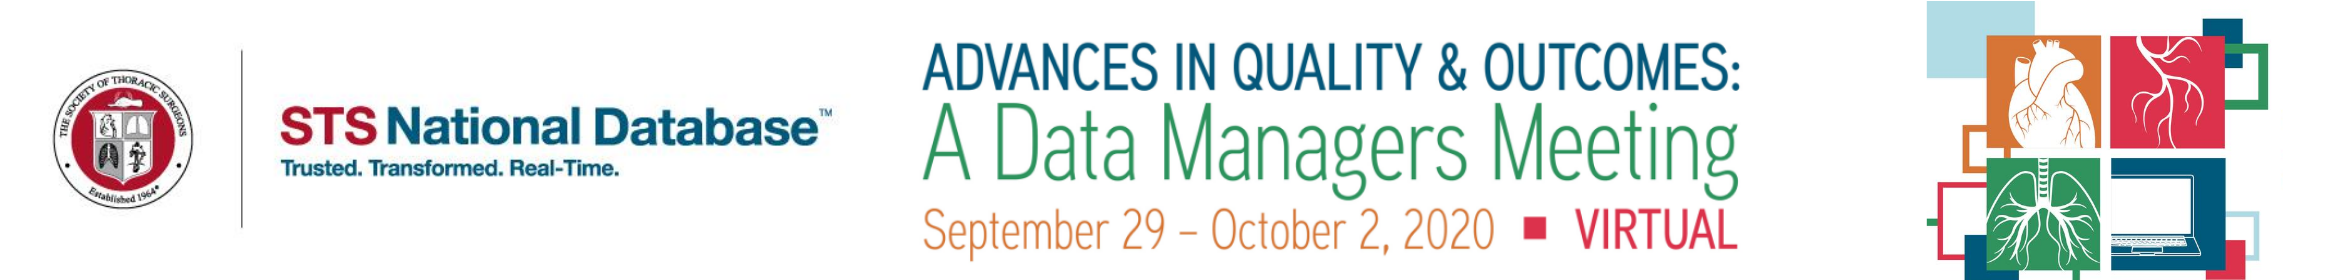 Advances in Quality & Outcomes: A Data Managers Meeting Main banner